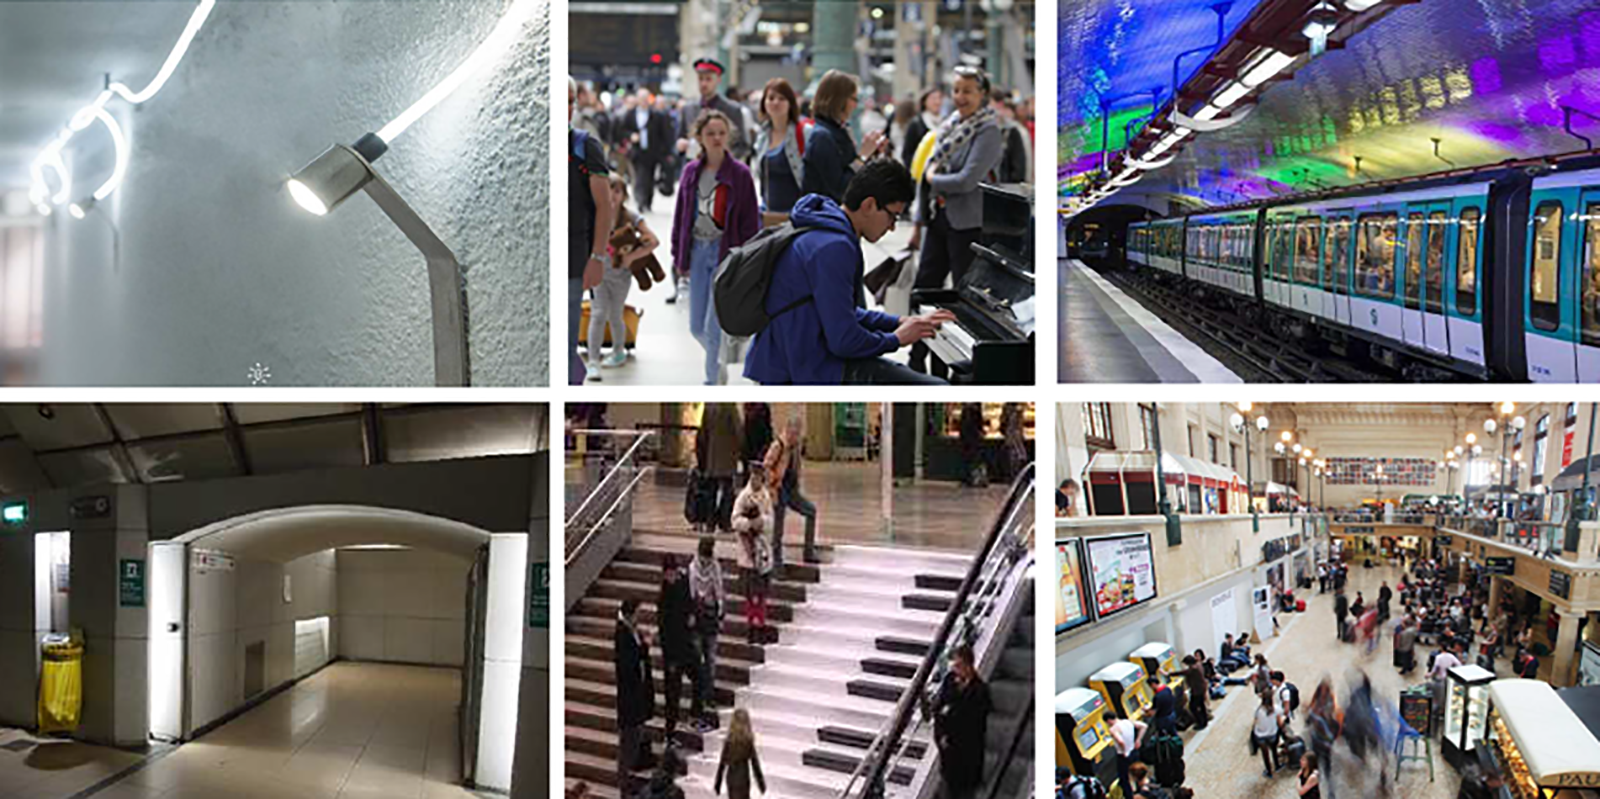 Smart Stations: Redefining Space to Create a Better Pedestrian Environment